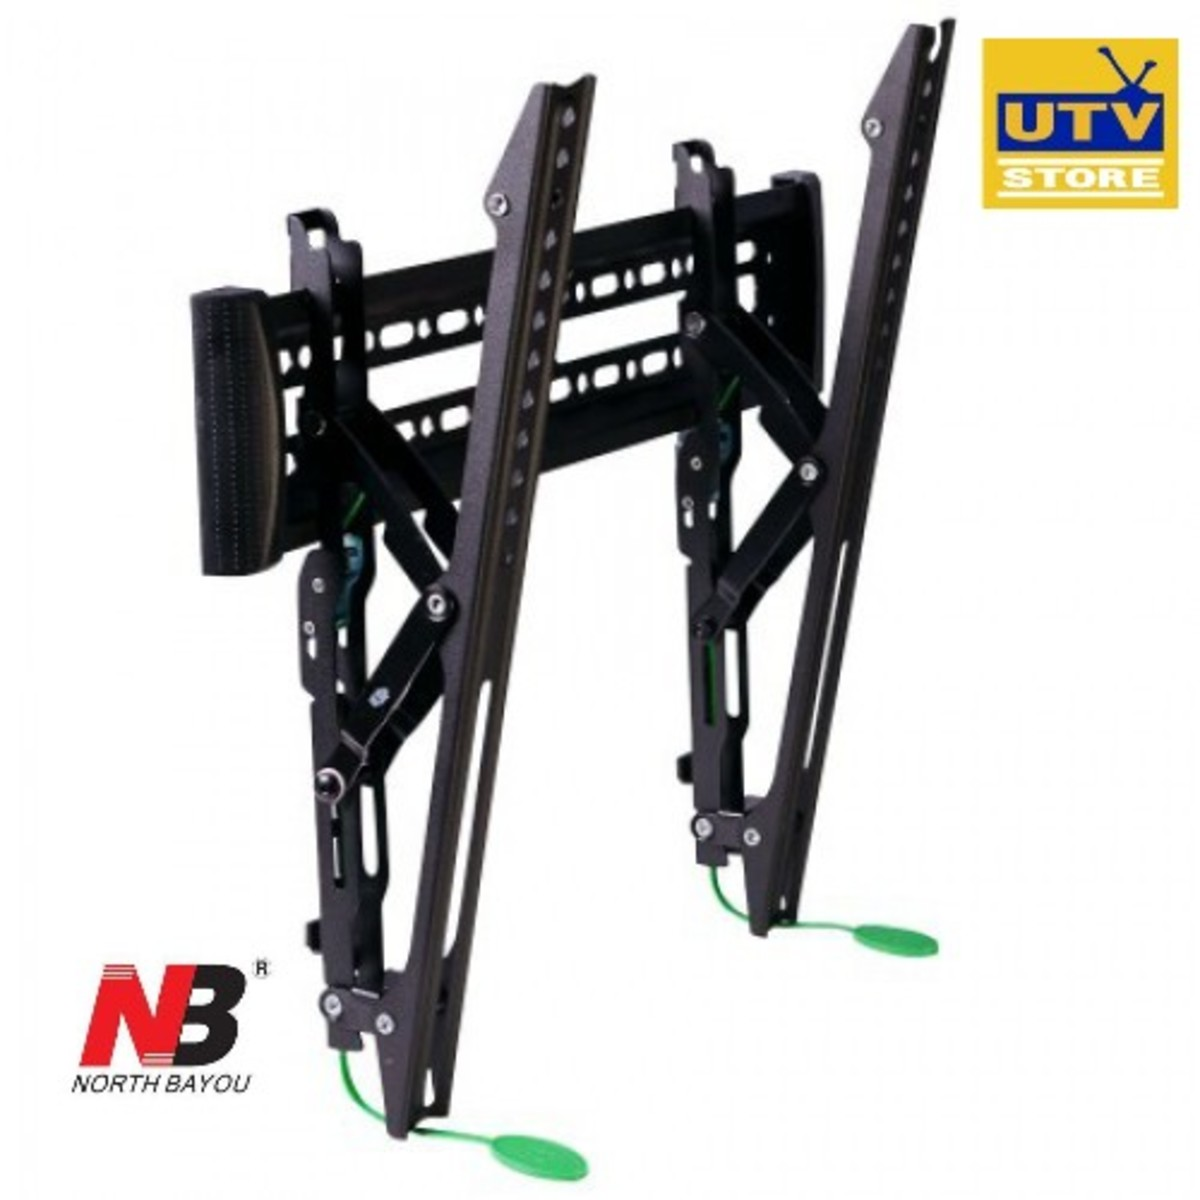 NBC2T LCD TV Wall mount adjustable frame